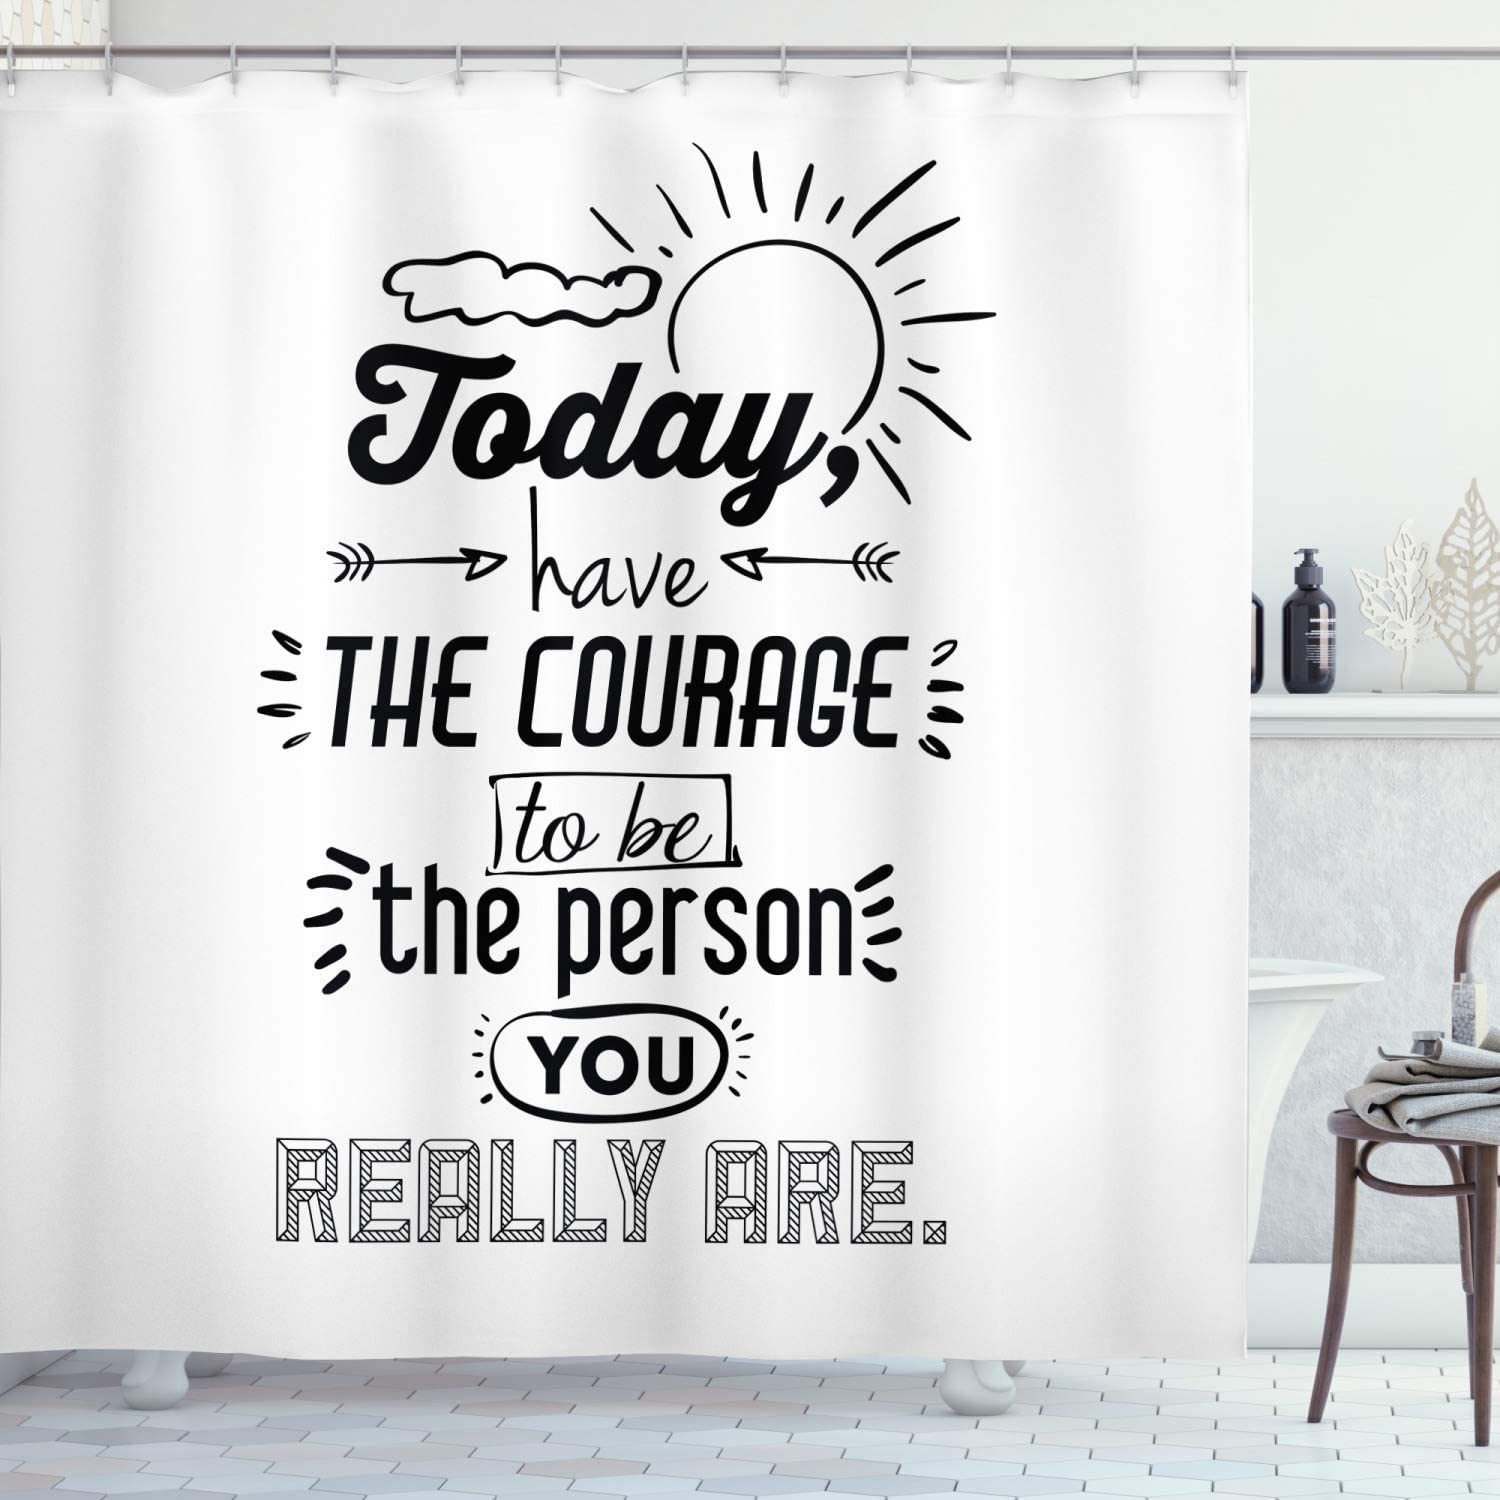 Amazon Com Ambesonne Inspirational Shower Curtain Positive Words Theme Encouragement Words Motivational Design Print Cloth Fabric Bathroom Decor Set With Hooks 84 Long Extra Black White Home Kitchen